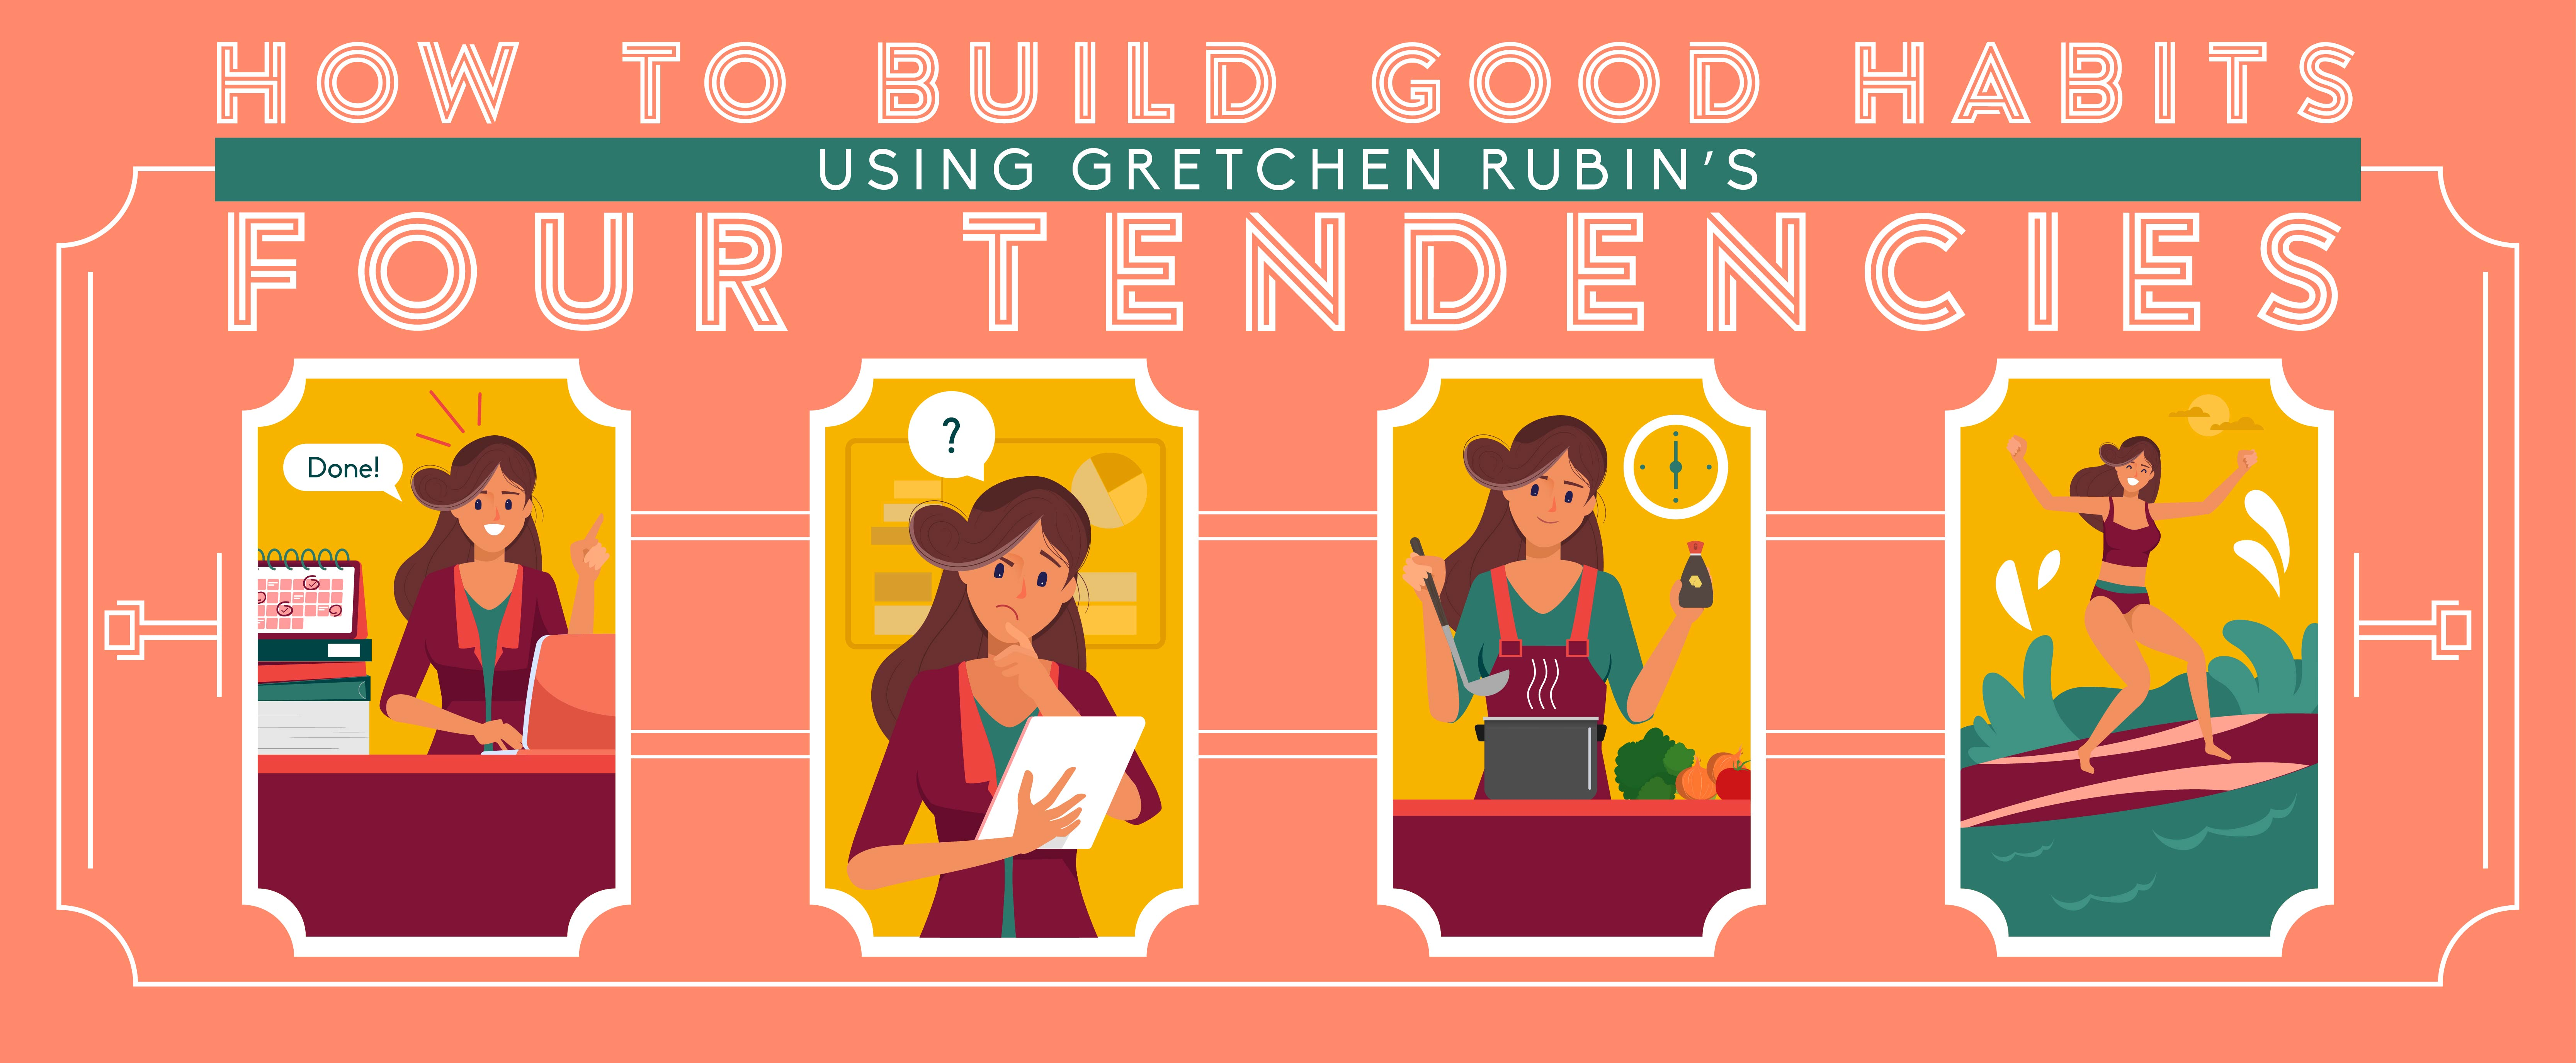 illustration of The Four Tendencies by Gretchen Rubin